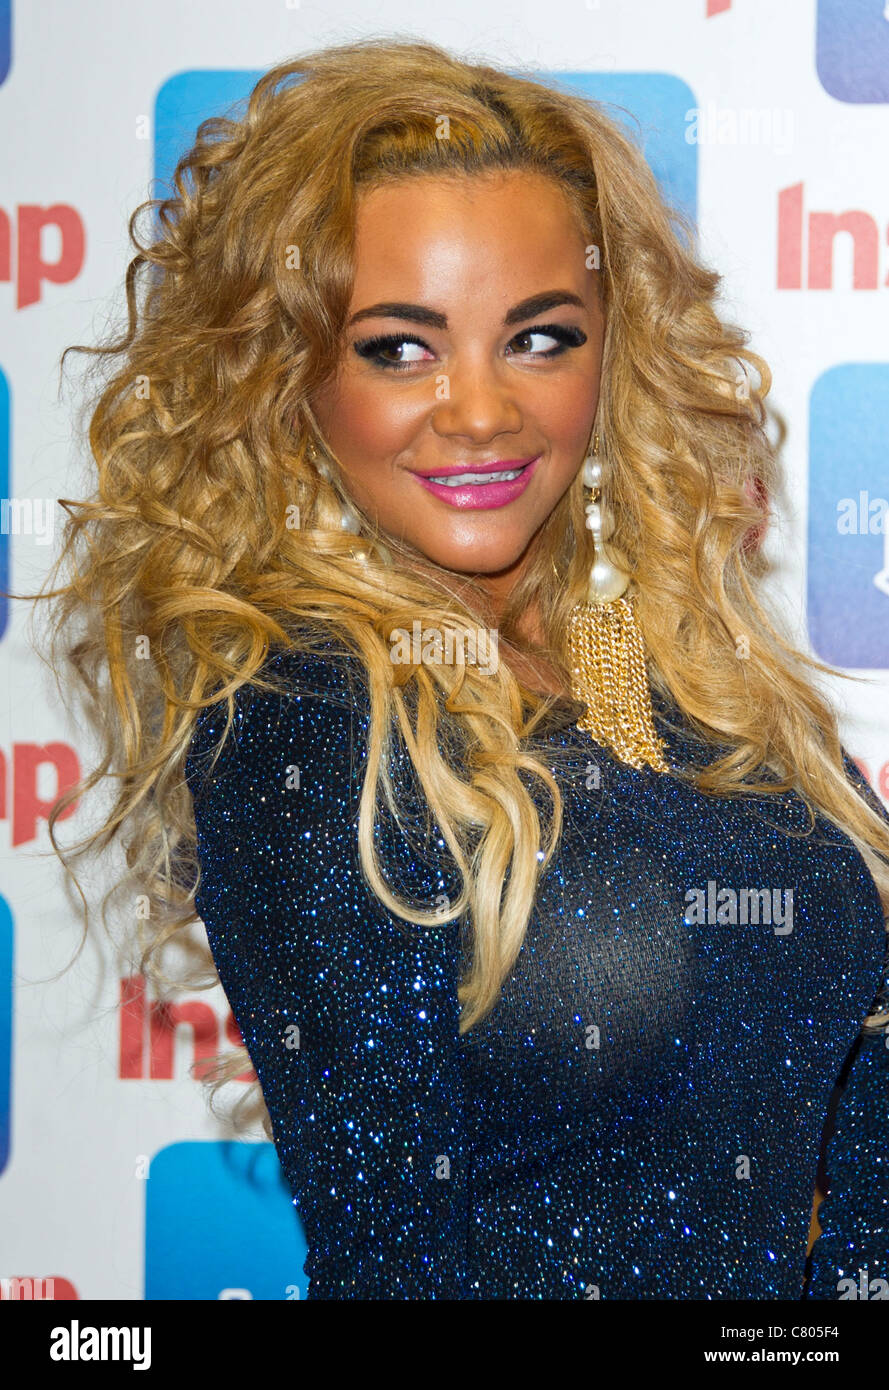 Pics Chelsee Healey nude (52 photos), Sexy, Paparazzi, Twitter, cleavage 2006